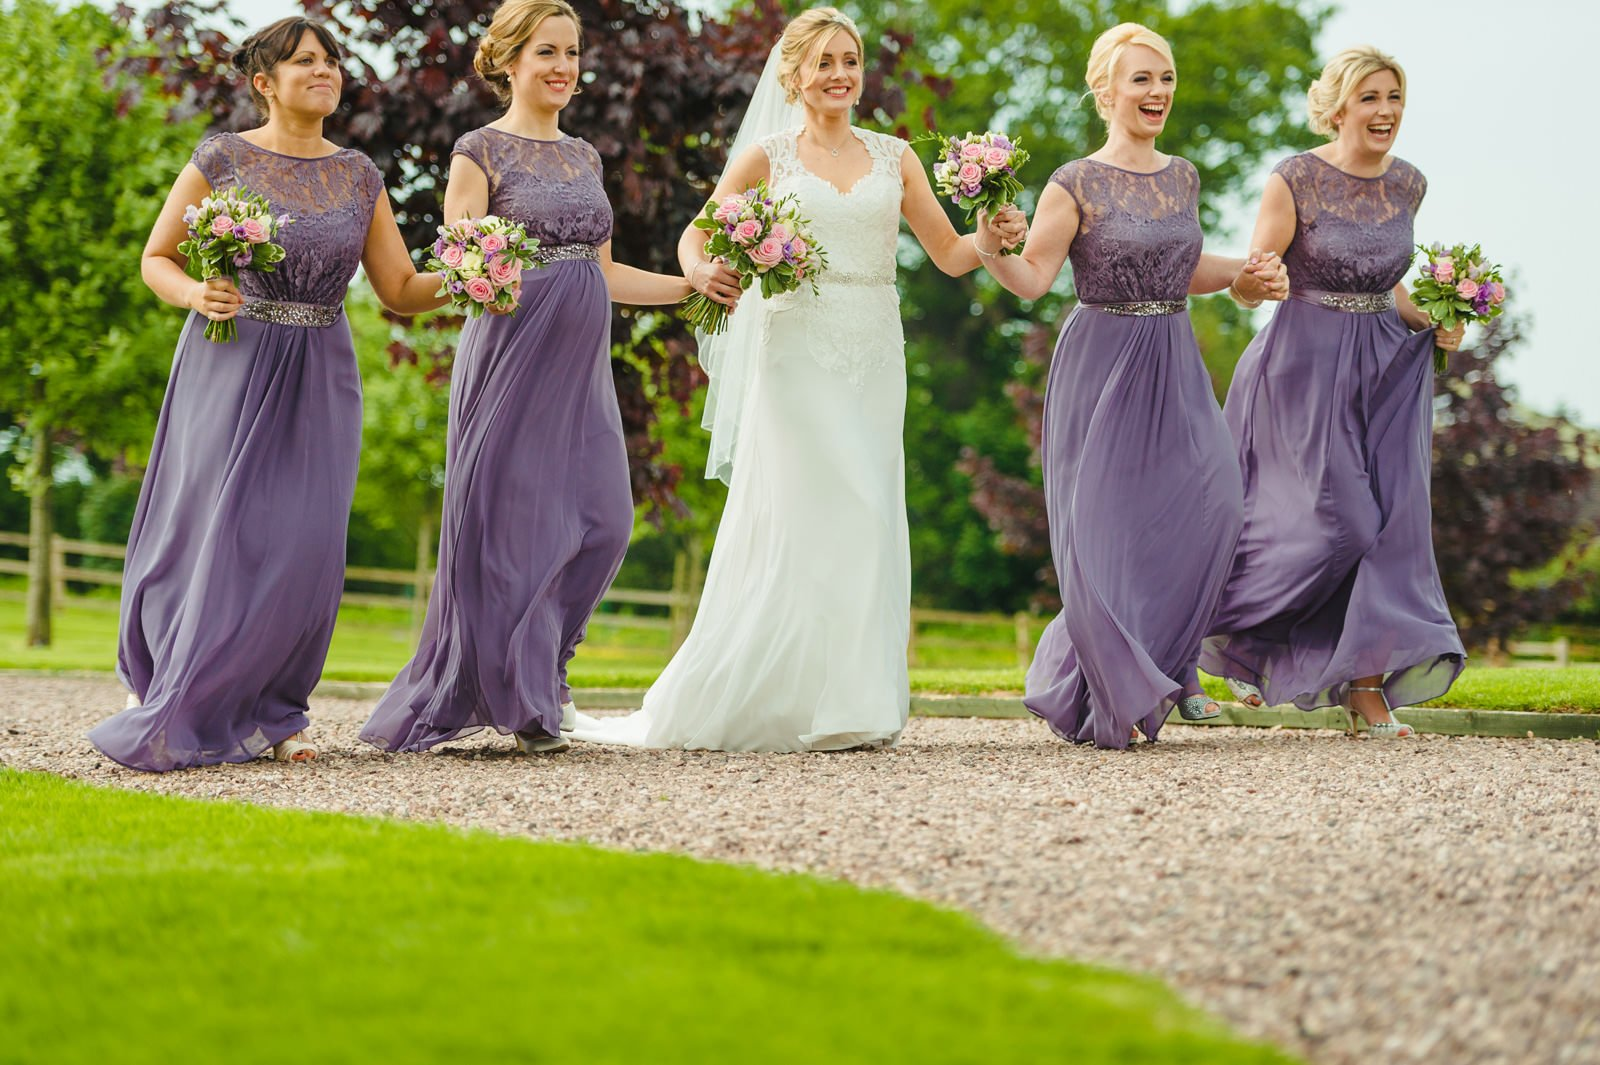 millers of netley wedding 69 - Millers Of Netley wedding, Dorrington, Shrewsbury | Emma + Ben